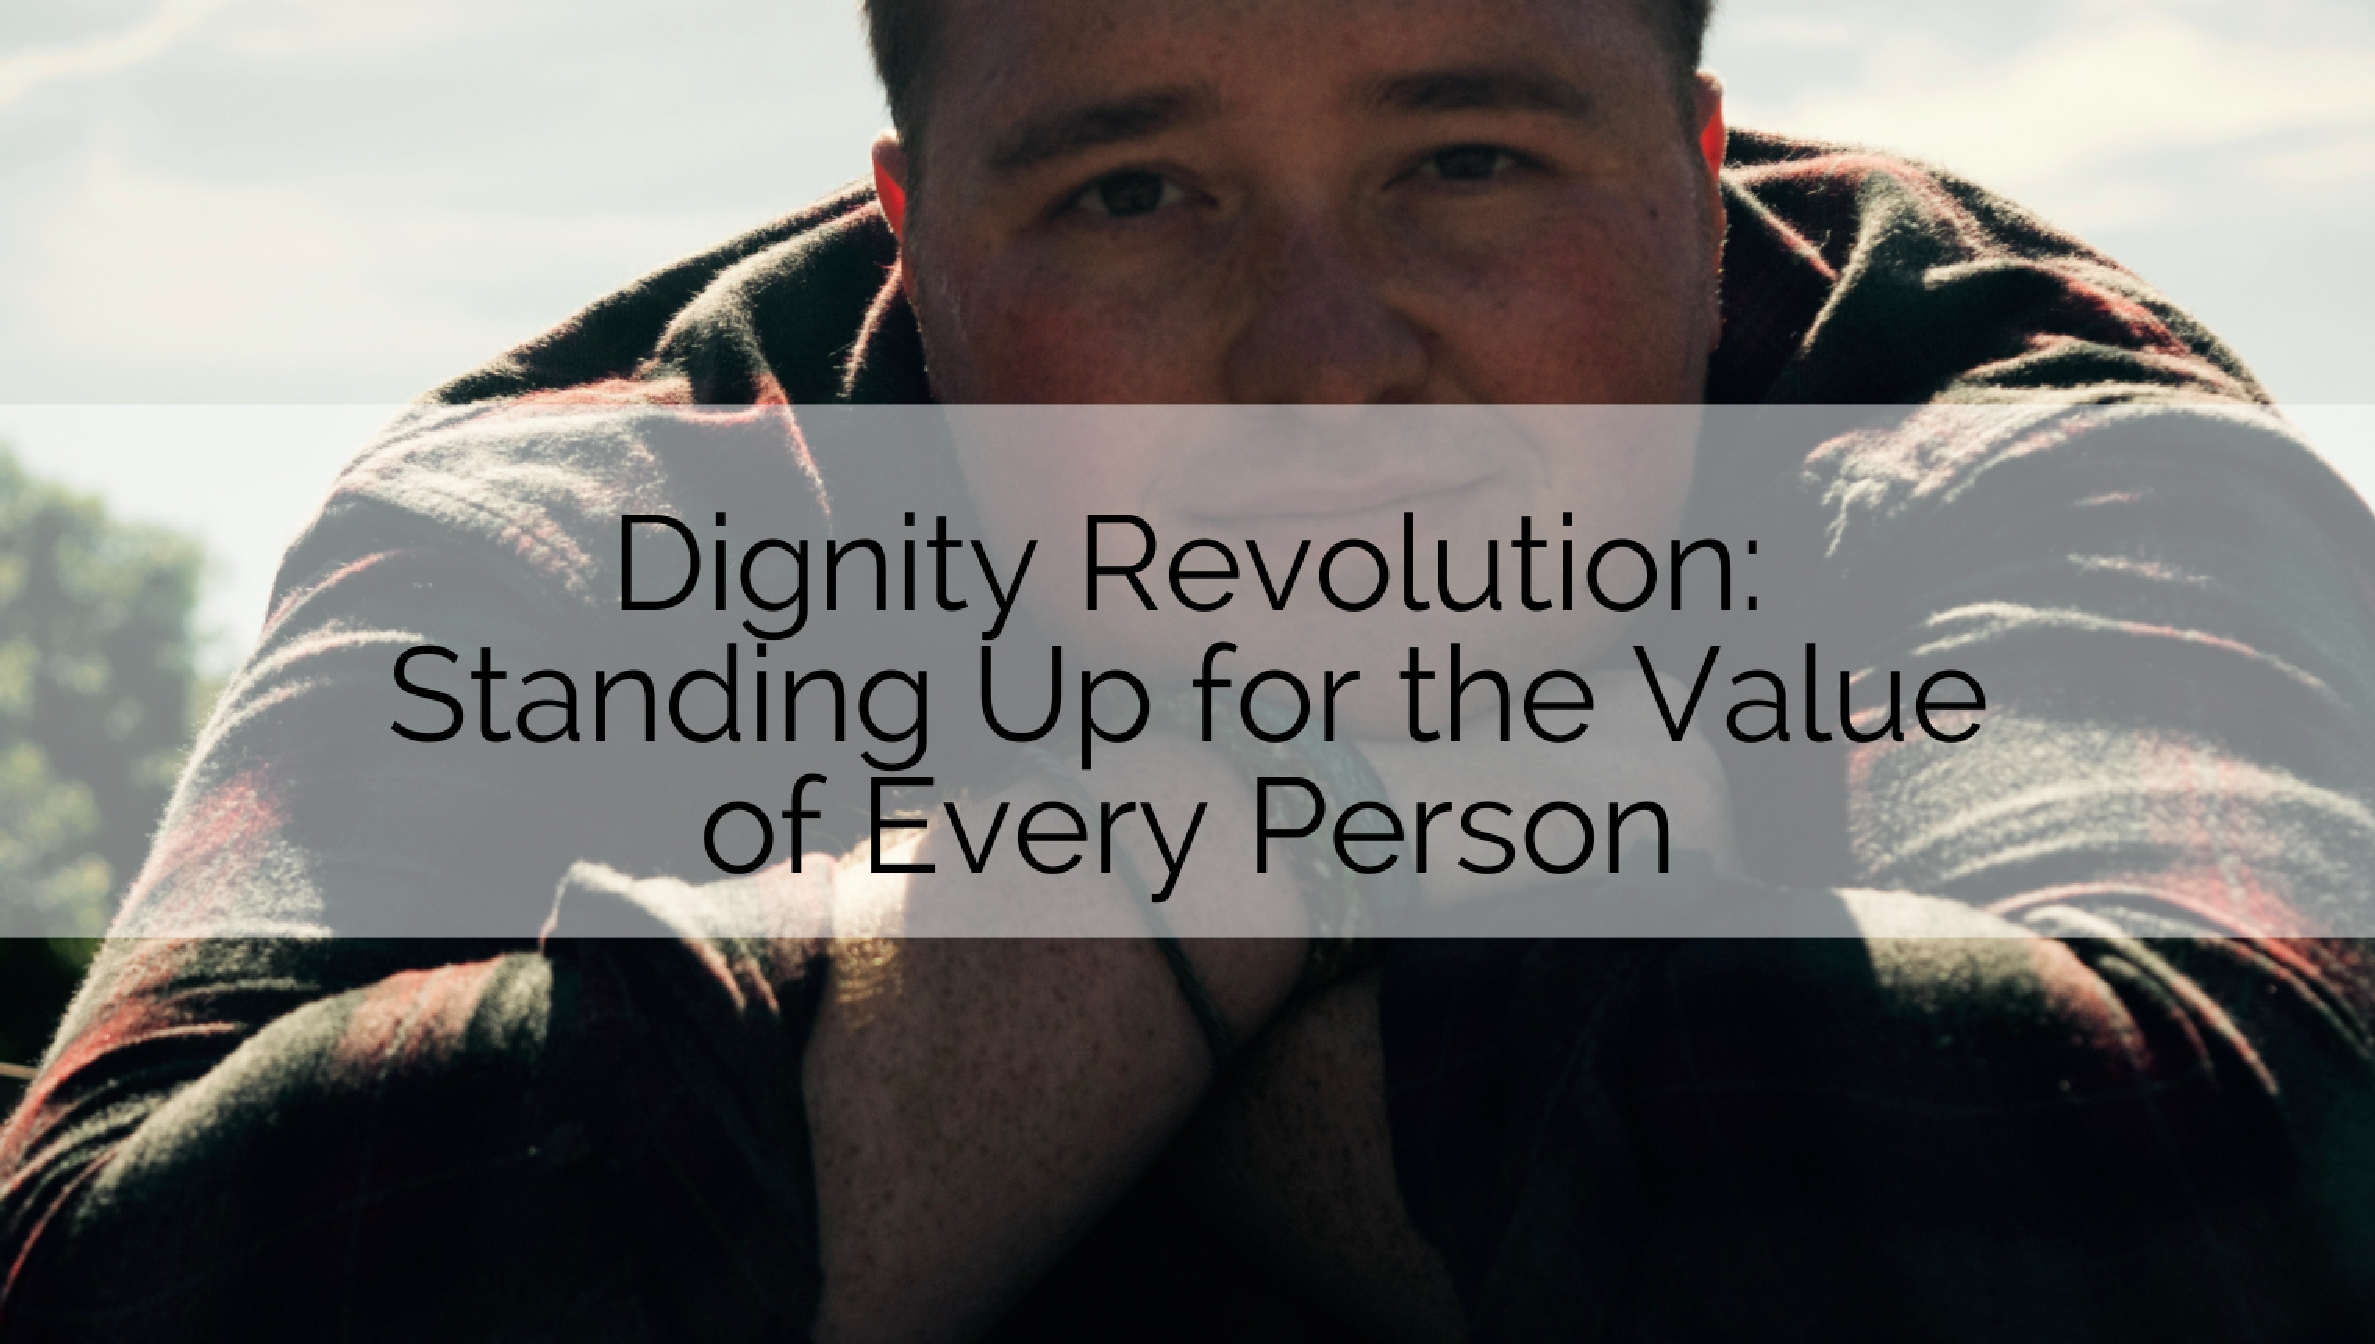 Dignity Revolution: Standing Up for the Value of Every Person